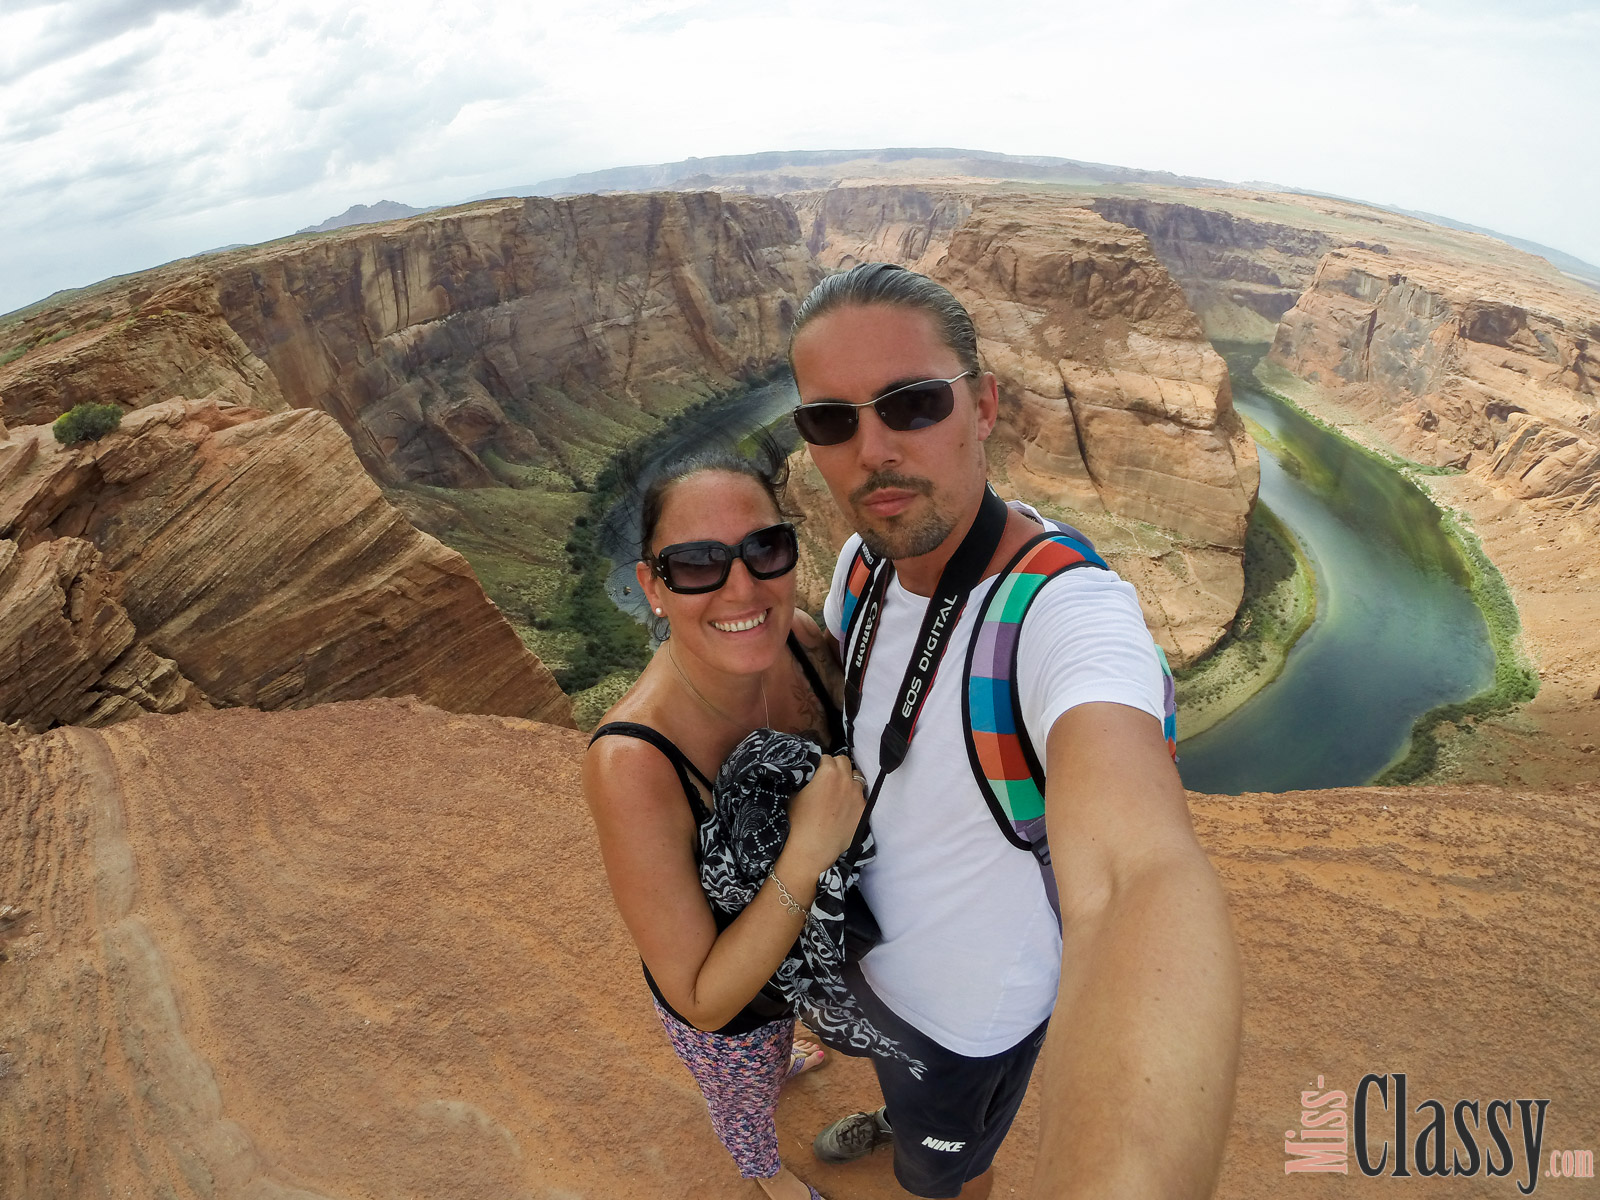 TRAVEL Antelope Canyon, Horseshoe Bend und Lake Powell, Miss Classy, miss-classy.com, Lifestyleblog, Lifestyleblogger, Lifestyleblog Graz, Travelblog, Travelblogger, Graz, Steiermark, Österreich, classy, beclassy, Reise, Travel, Wanderlust, Wayfarer, USA, Westküste, Roadtrip, Utah, Page, Horseshoe Bend, Lake Powell, Antelope Canyon, Upper Antelope Canyon, Glen Canyon Dam, Carl Hayden Visitor Center, Lone Rock Beach am Lake Powell